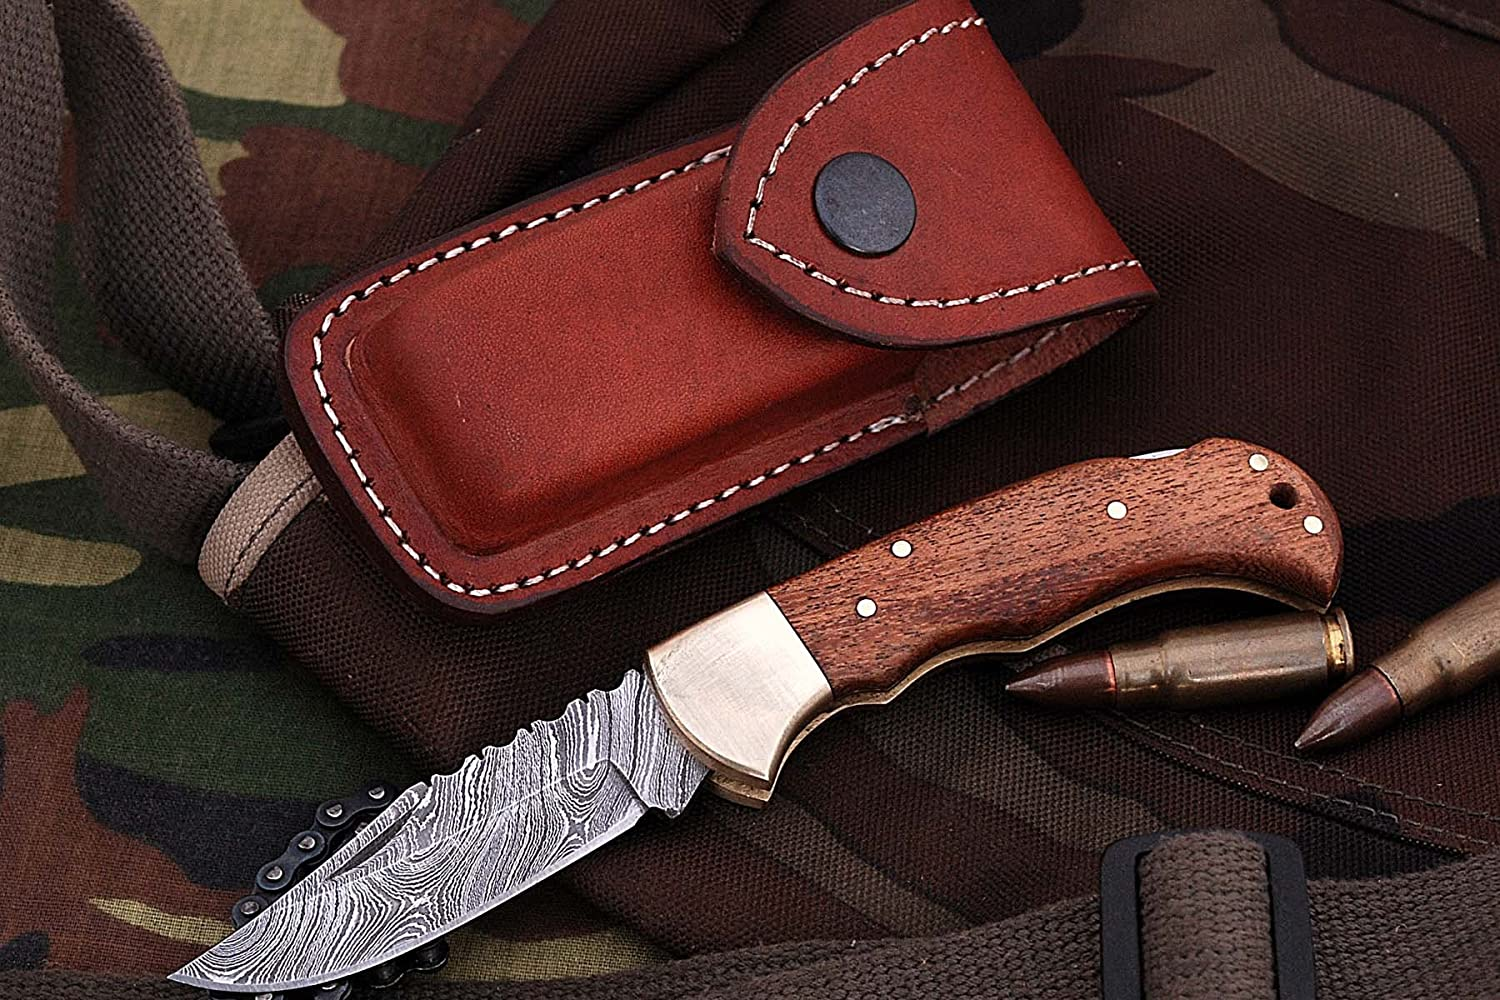 Poshland Knives FN-9003, Custom Handmade Damascus Steel 6.5 Inches Folding Knife – Beautiful Wallnut Wood Handle with Brass Bolster